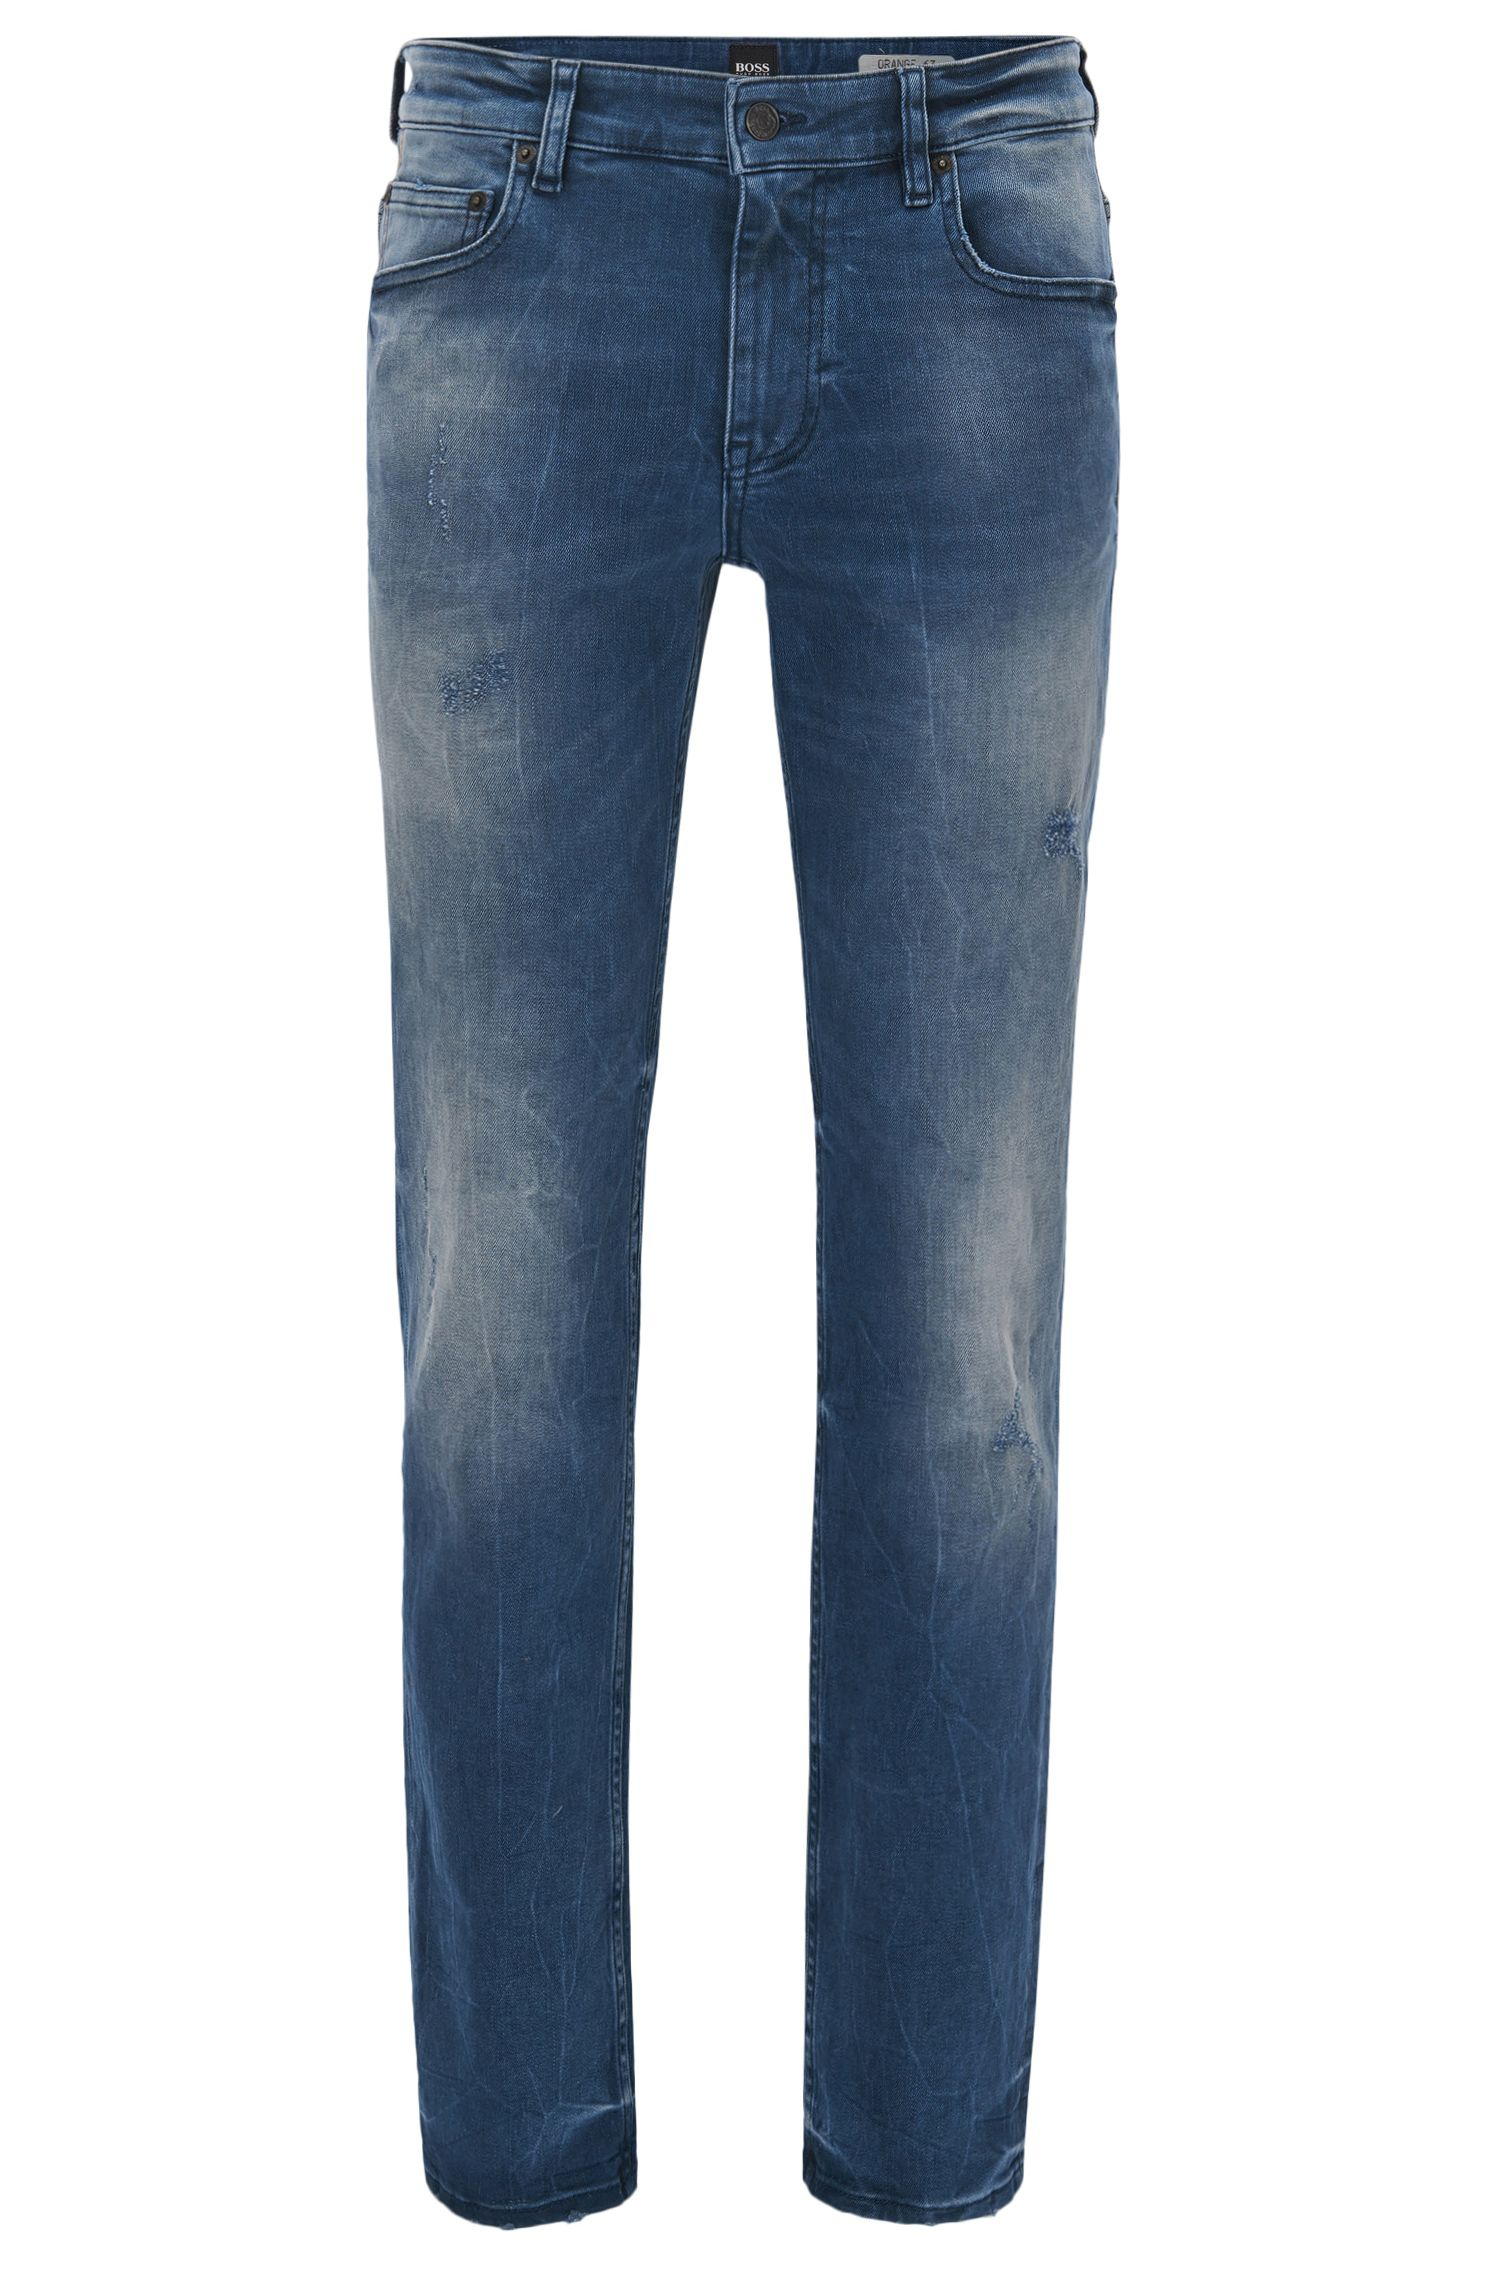 Jean Slim Fit en denim stretch indigo au look usé